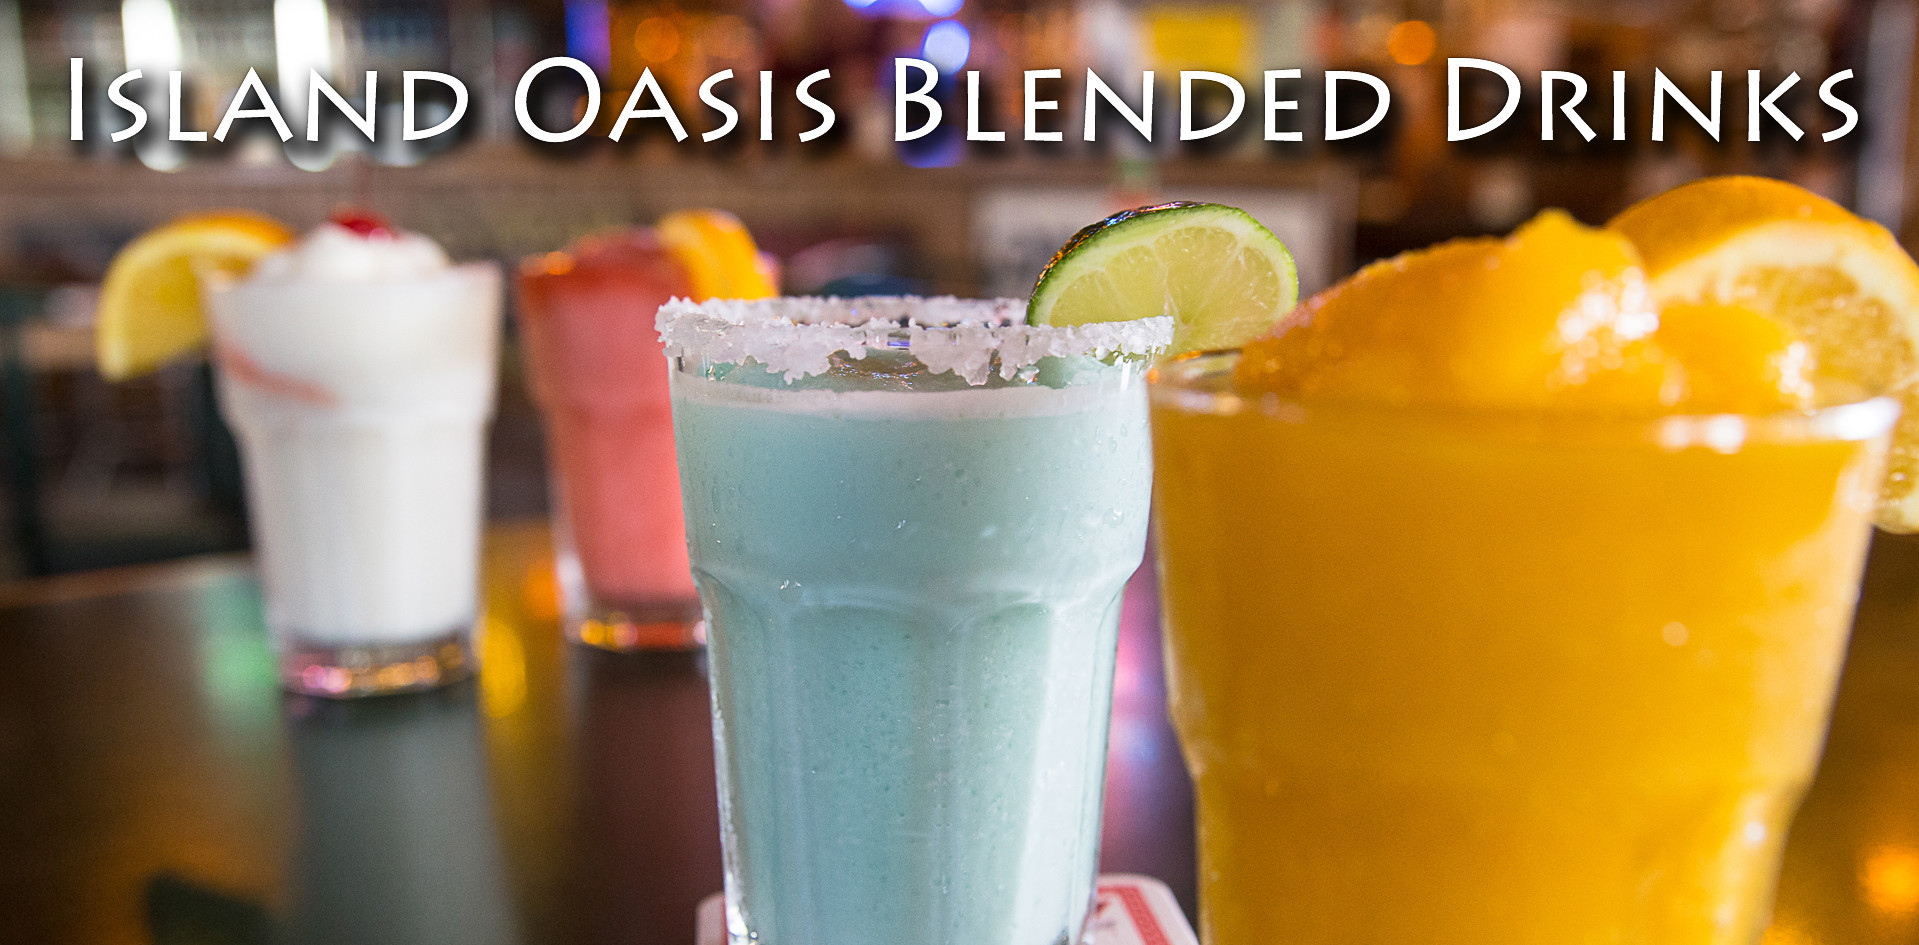 Island Oasis Blended Drinks